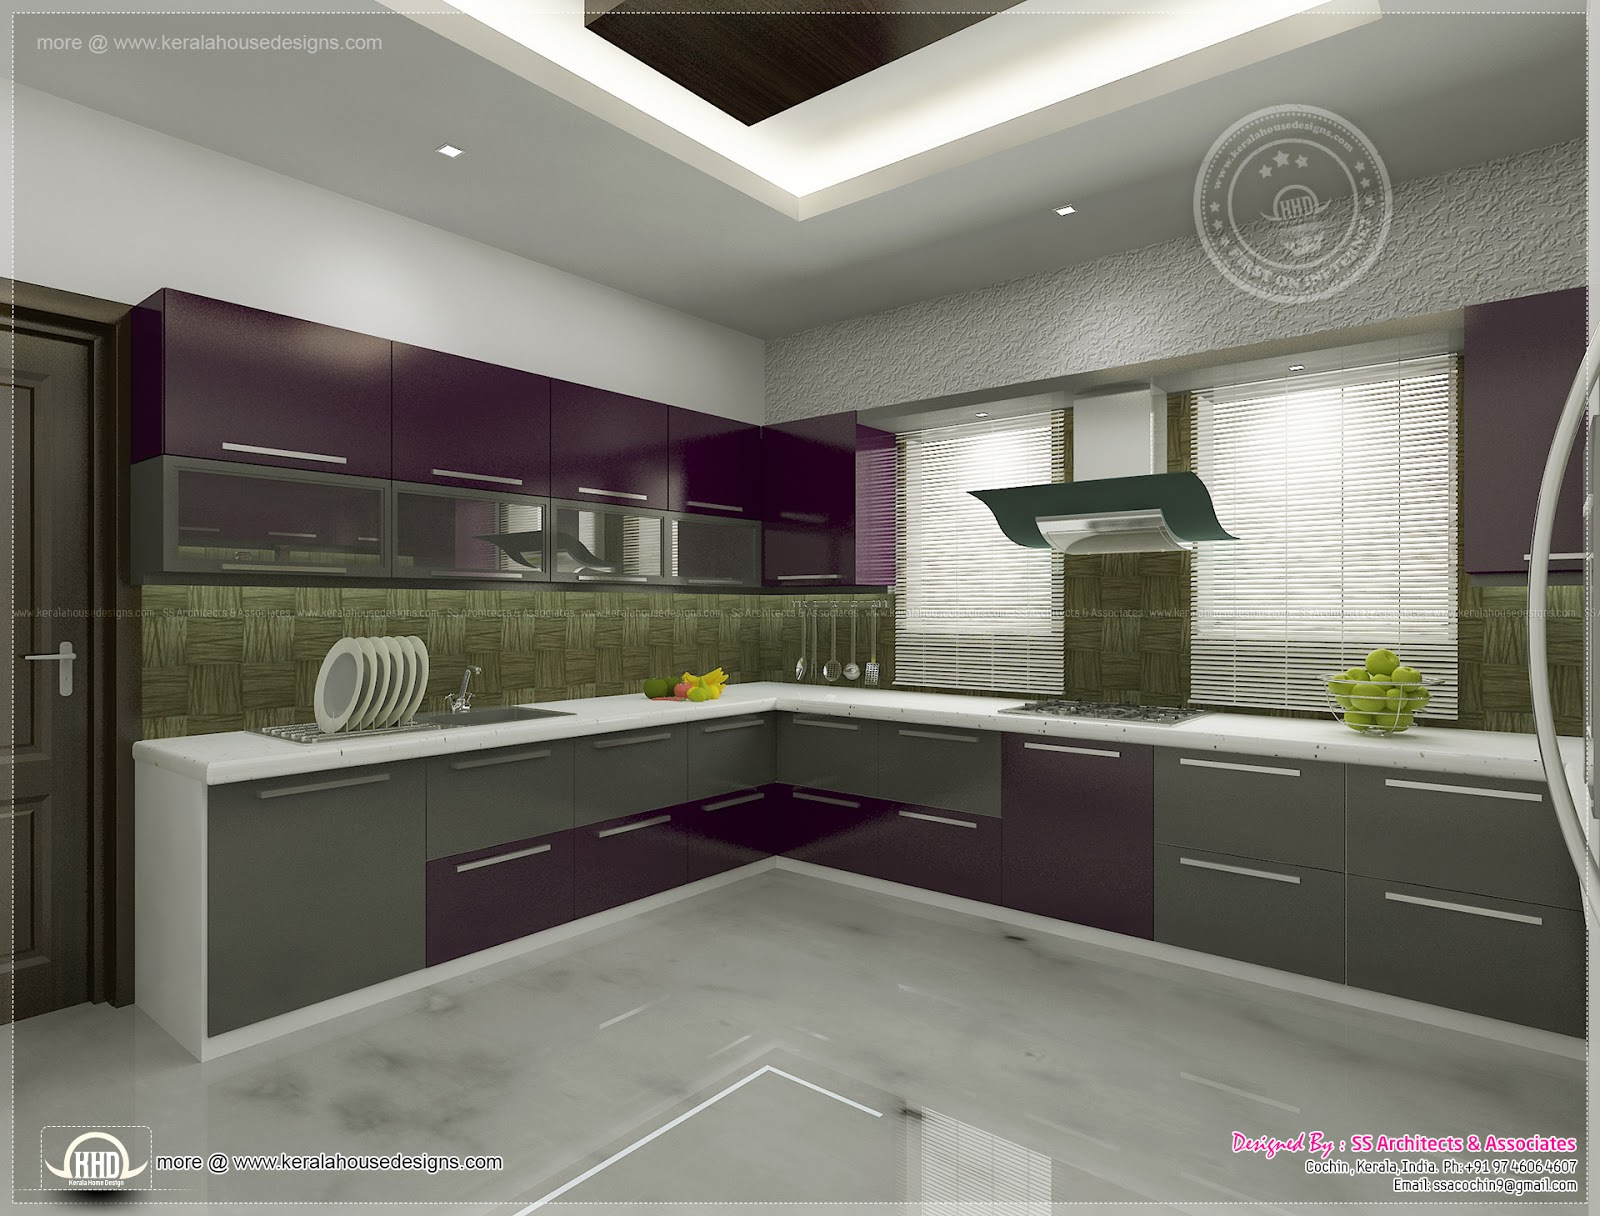 Kitchen interior views by ss architects cochin kerala for Best house interior designs in india